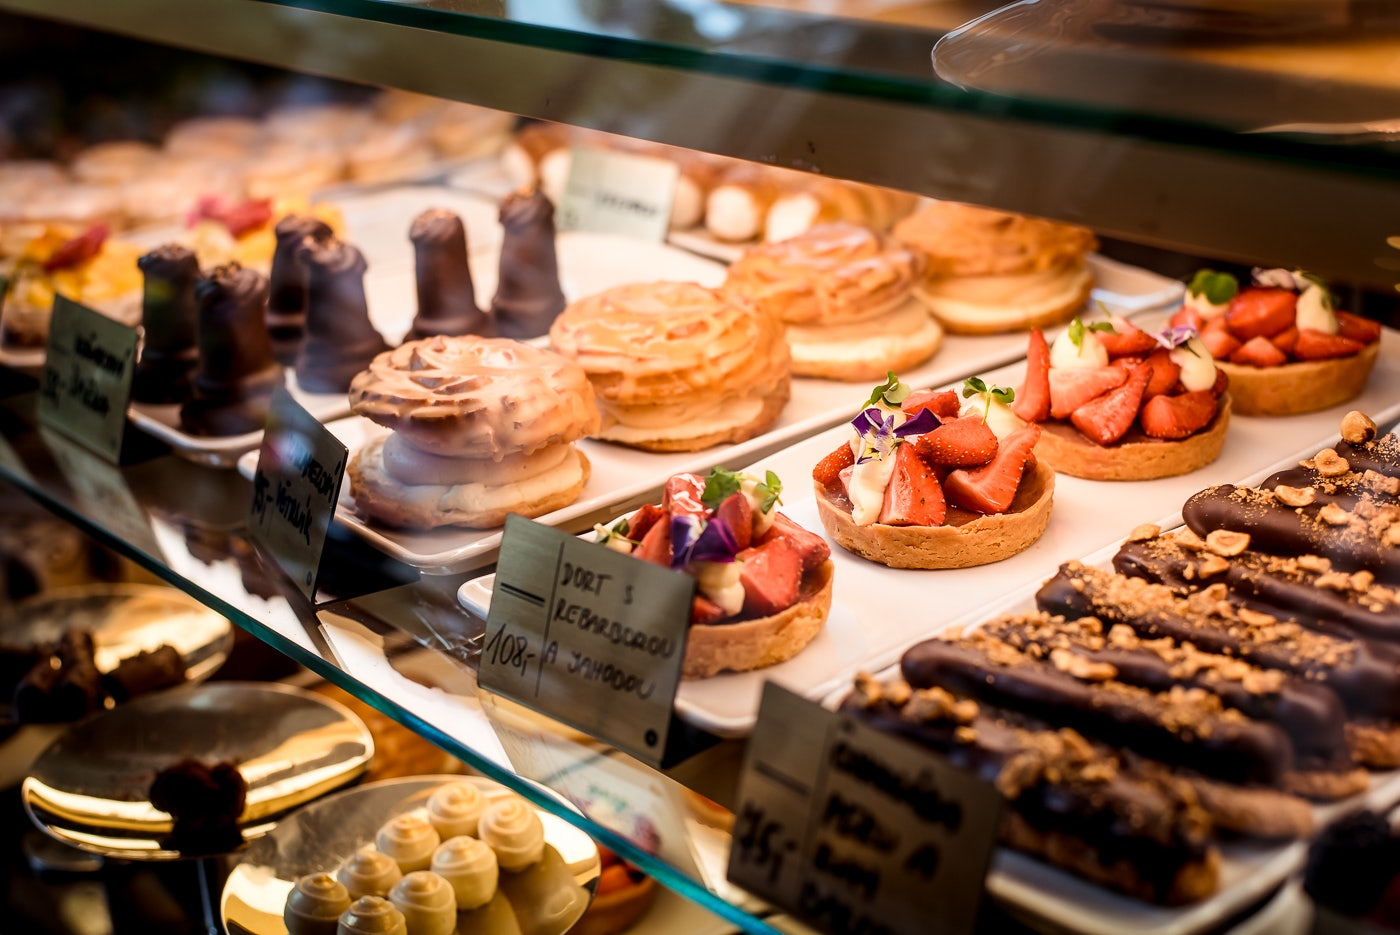 pastries and desserts from Cafe Savoy in Prague